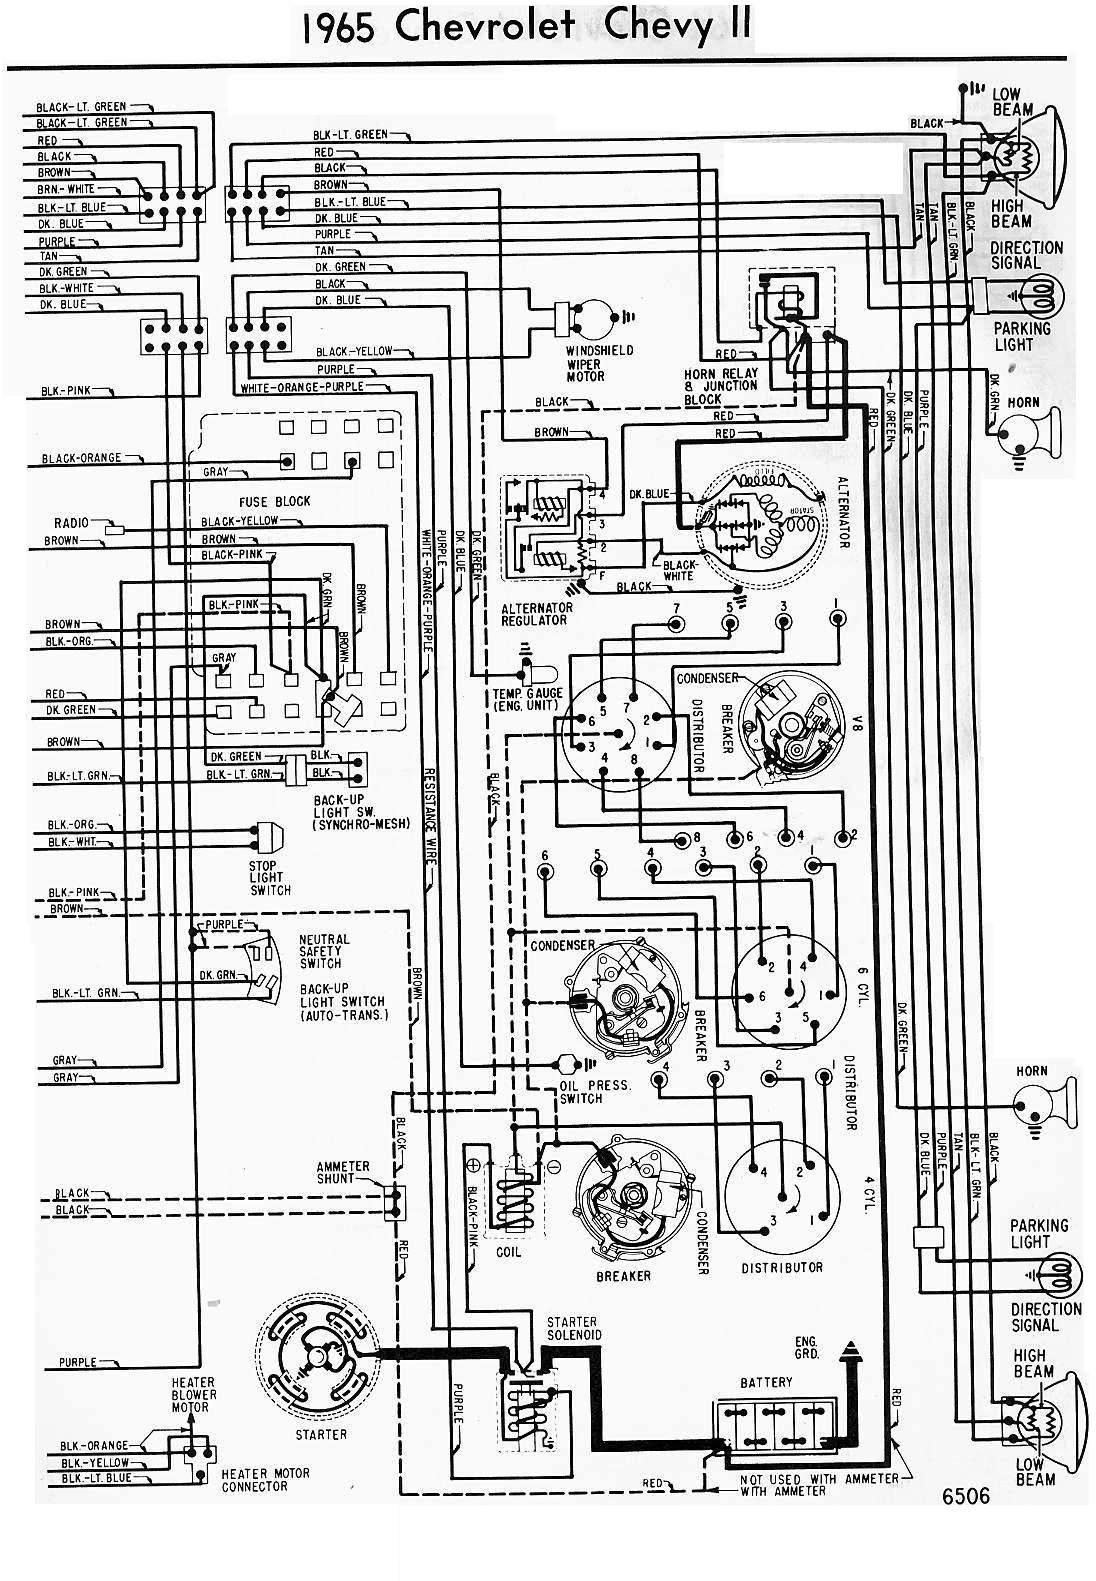 1965 chevy wiring diagram GwtSdvU diagrams chevy starter wiring diagram chevy starter wiring 1965 chevy wiring diagram at soozxer.org